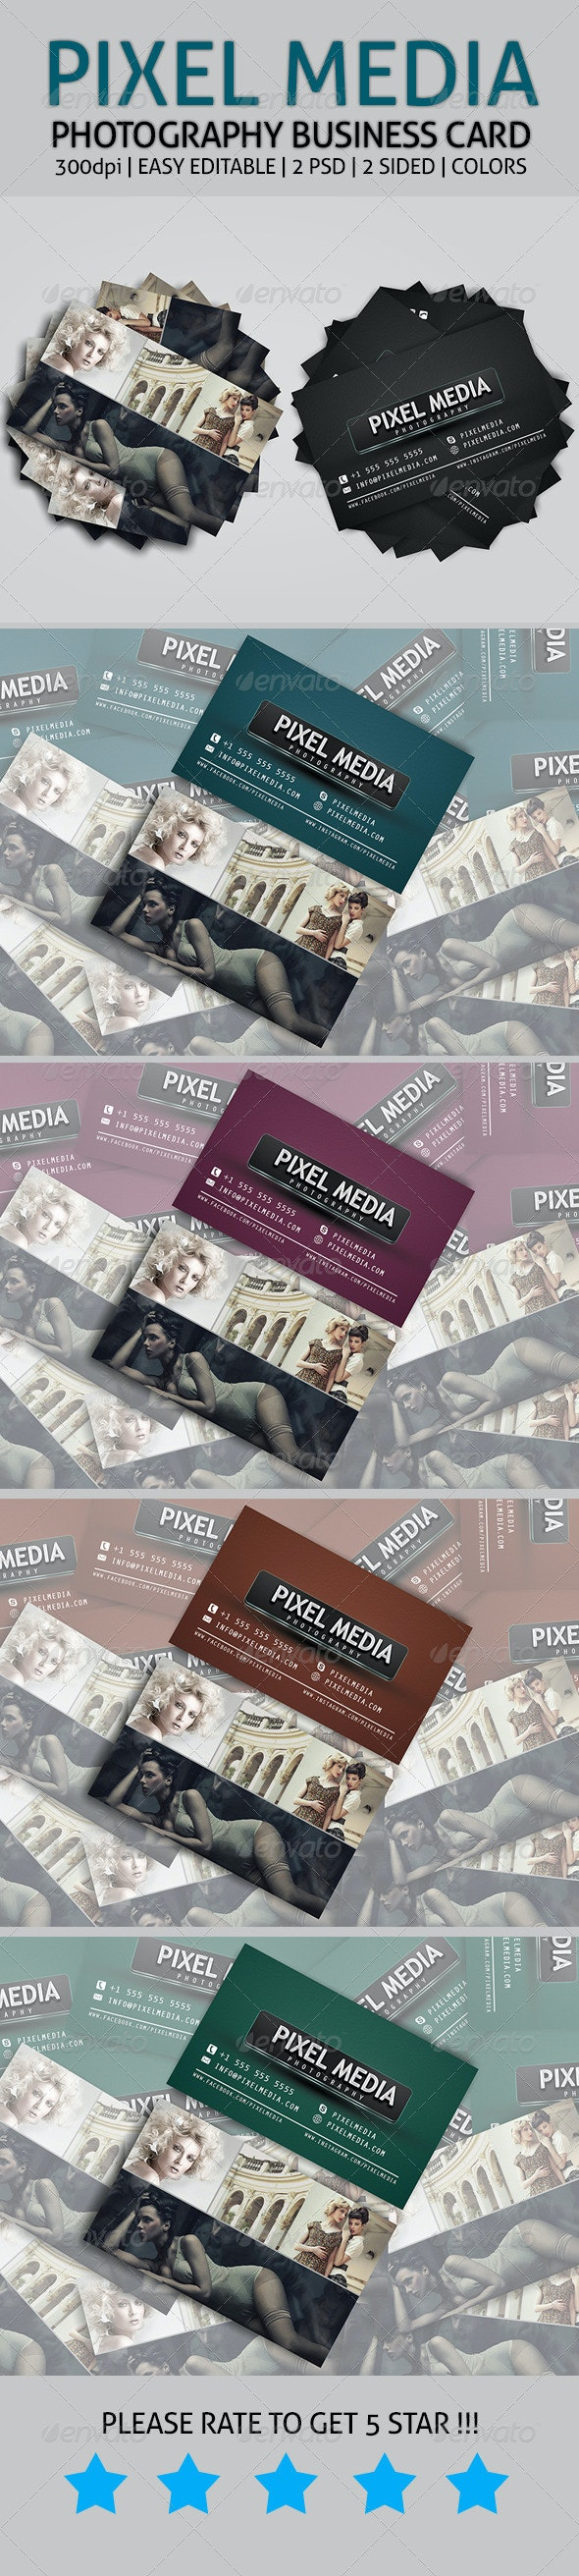 Pixel Media - Photography Business Card - Industry Specific Business Cards